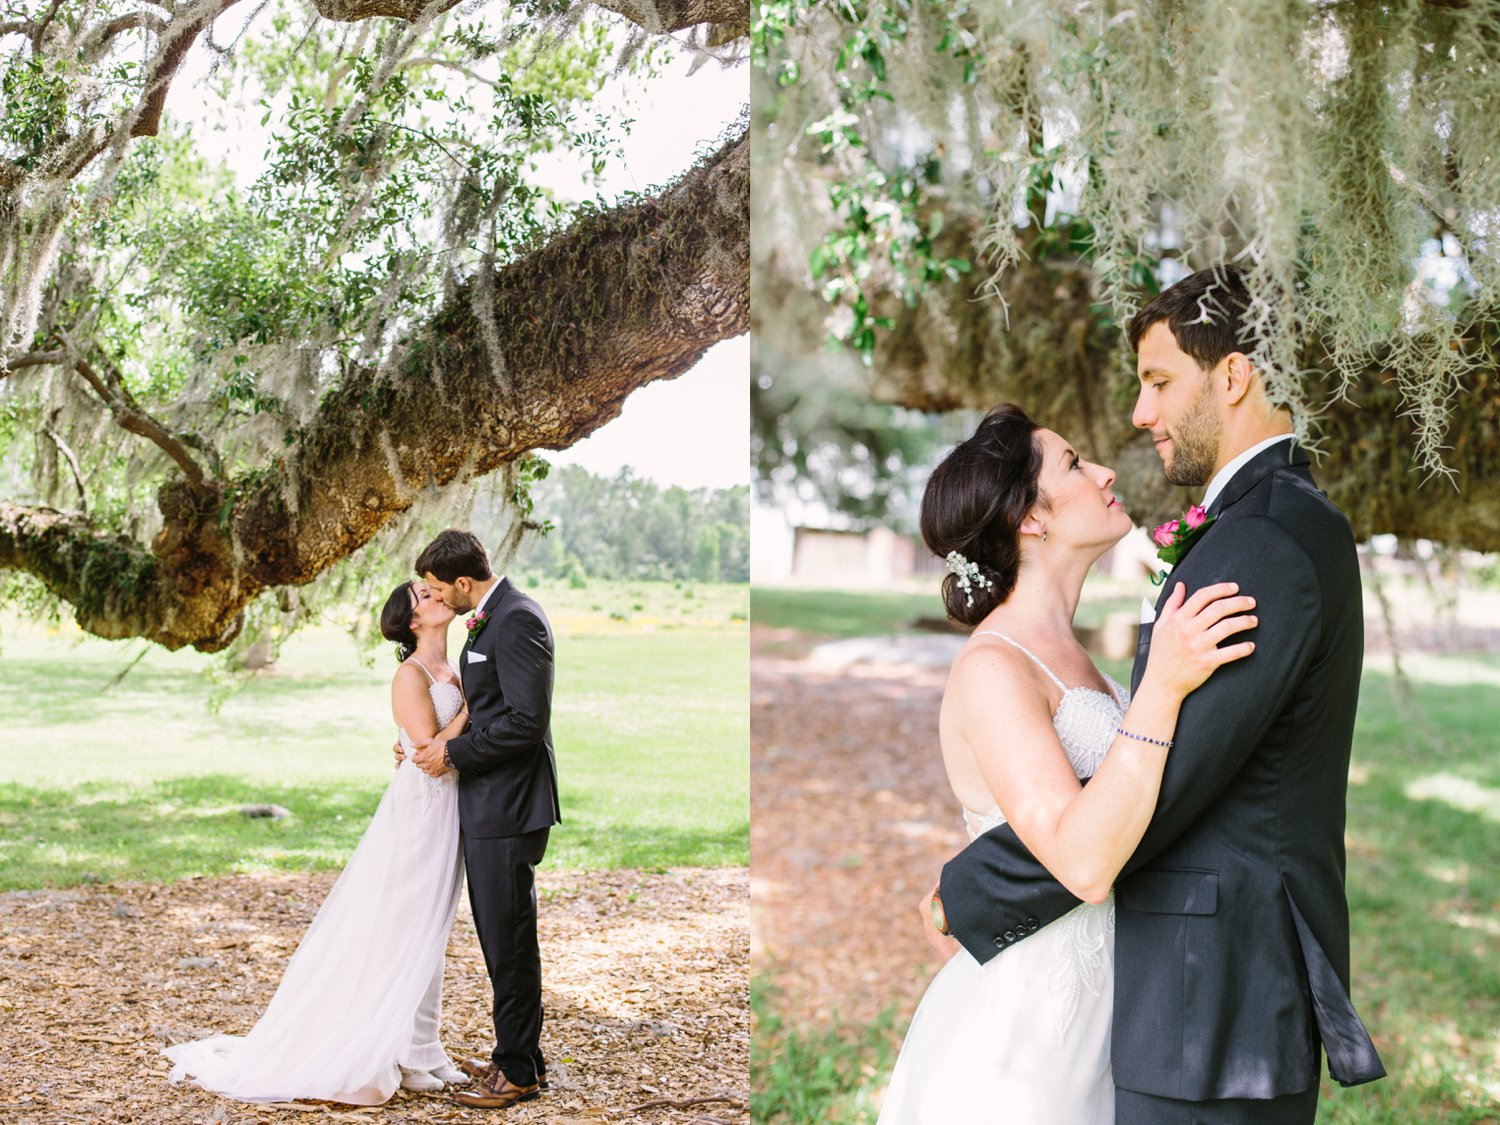 Lindsey_A_Miller_Photography_mcleod_plantation_wedding_charleston_south_carolina_clear_tent_spring_mod_events_031.jpg